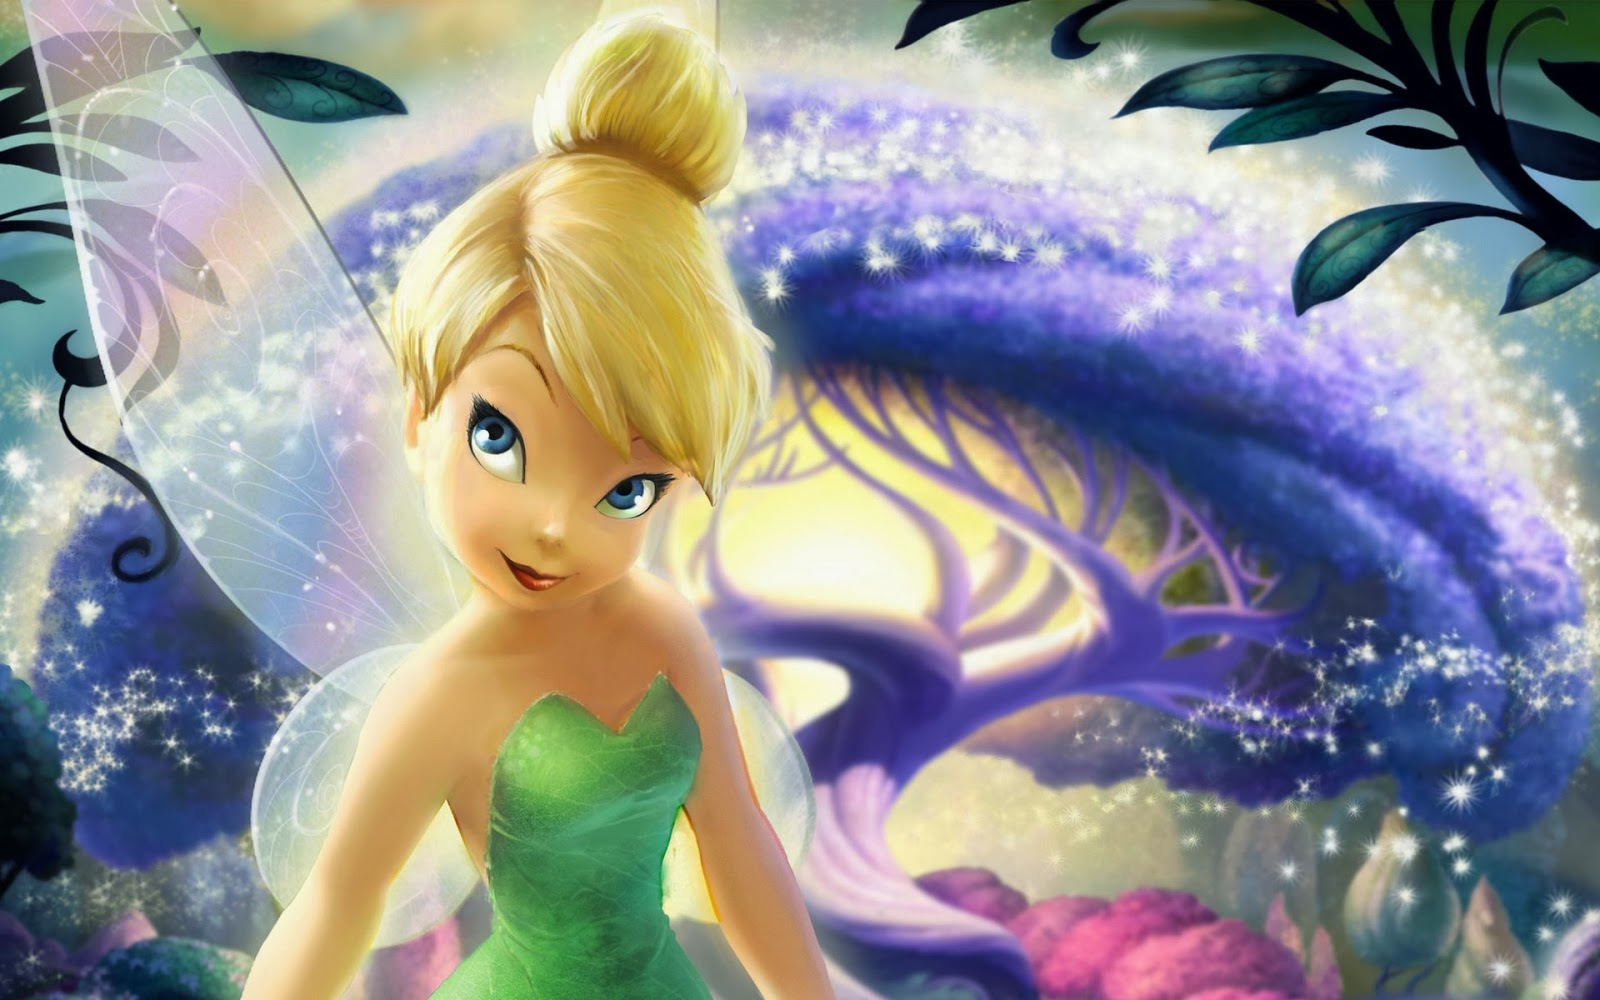 WALLPAPER ANDROID - IPHONE: Wallpaper Tinkerbell